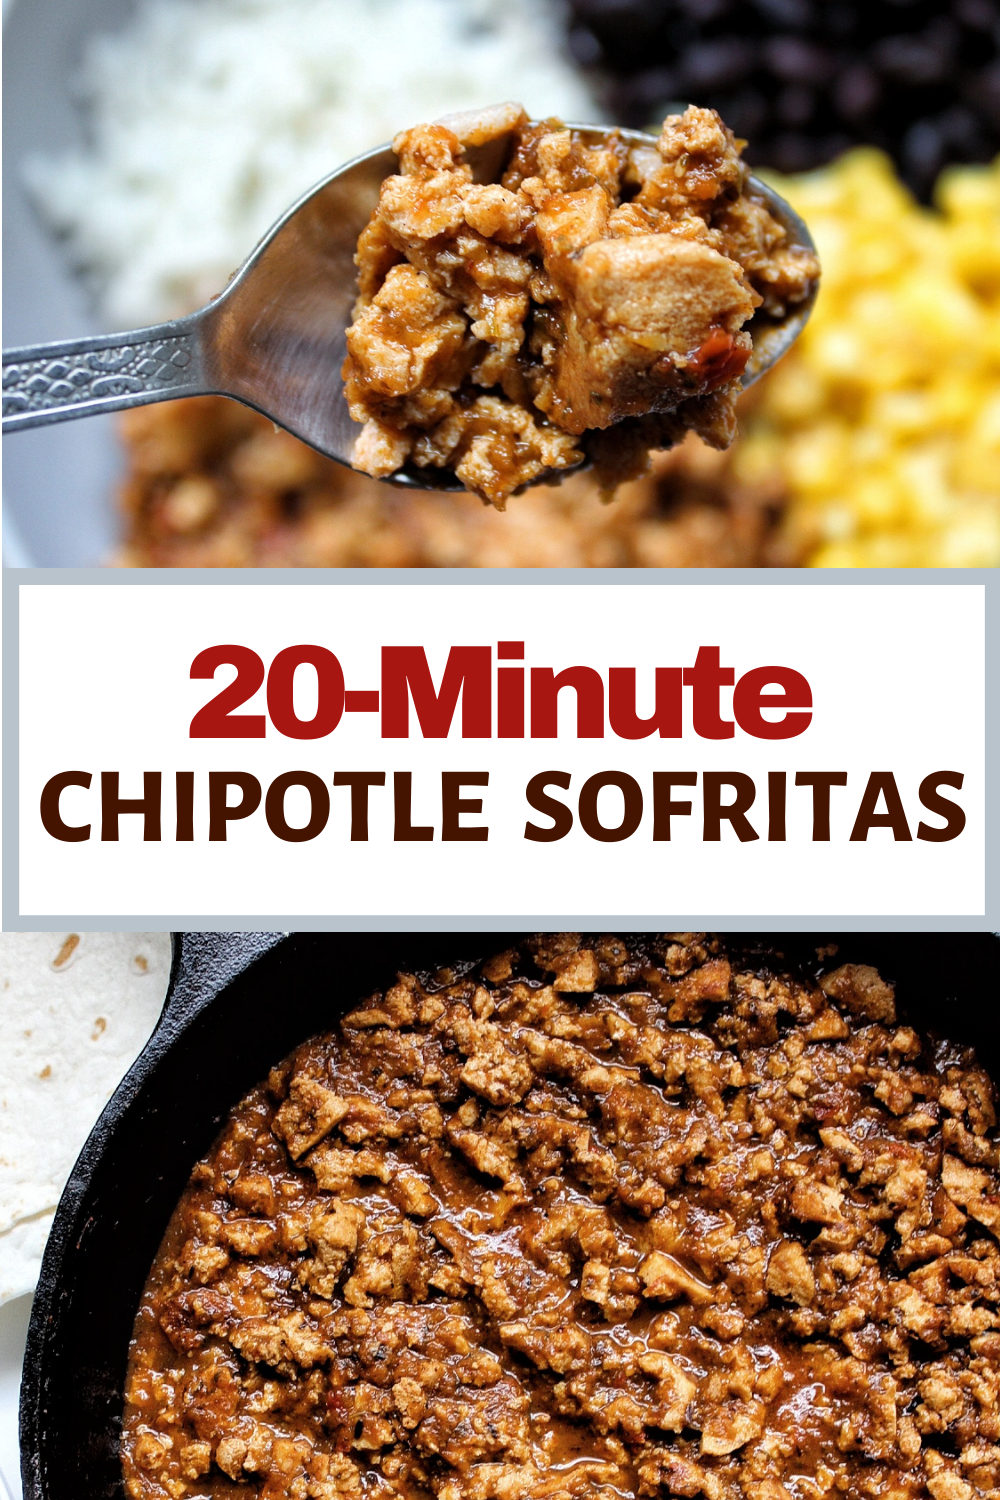 Vegan Chipotle-inspired sofritas ready in just 20 minutes!